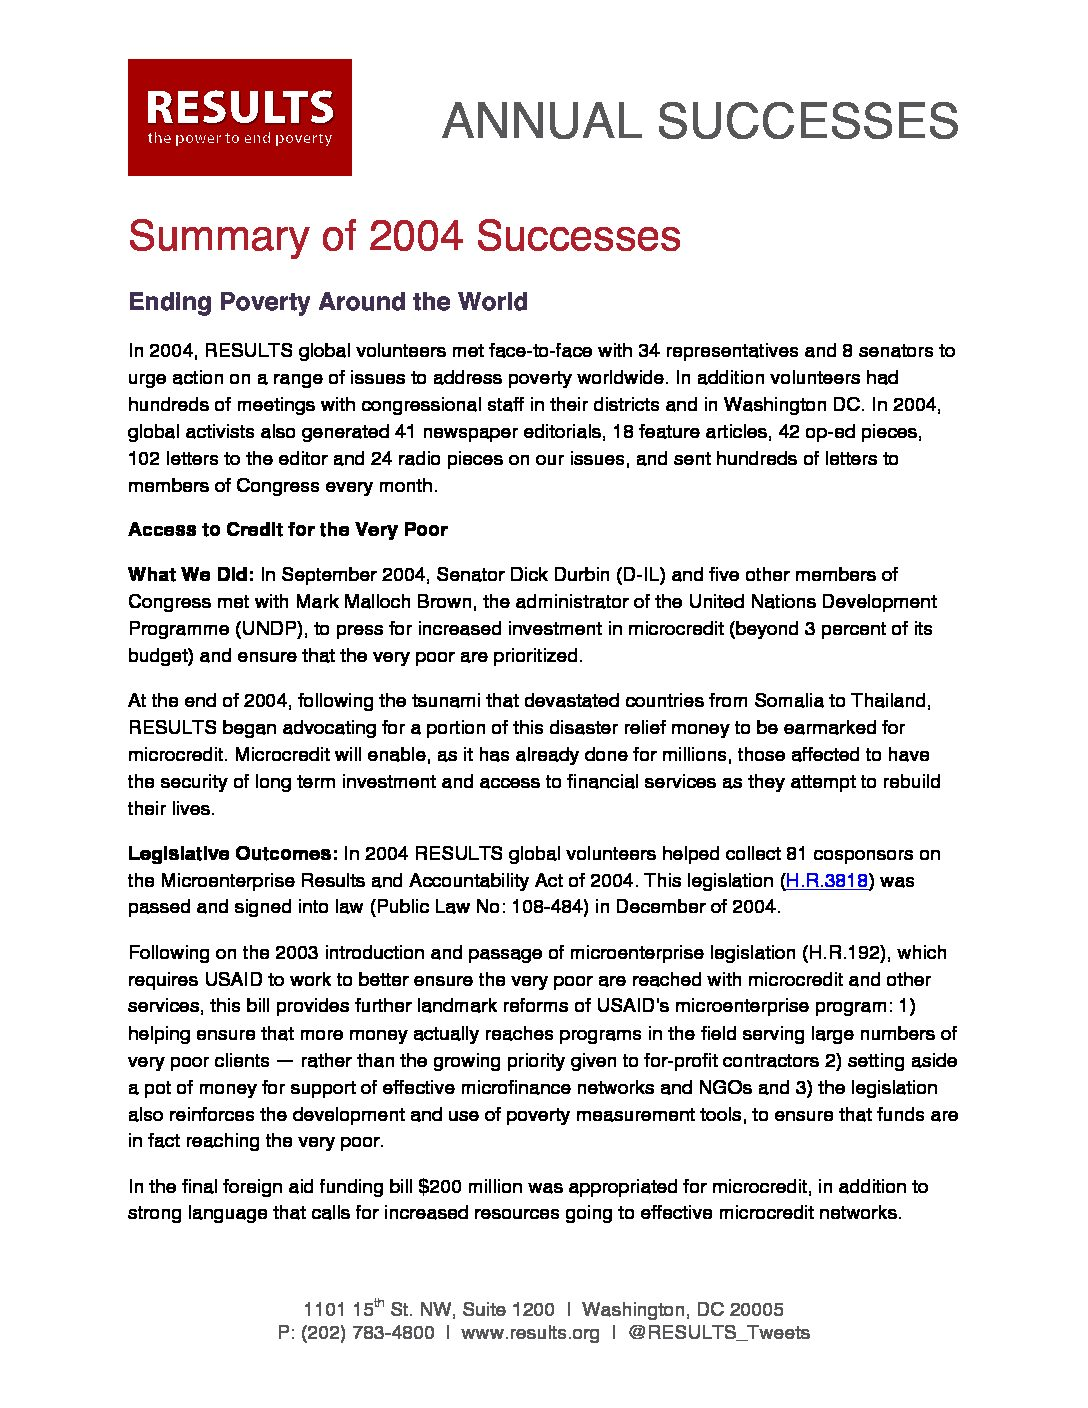 Annual Successes 2004